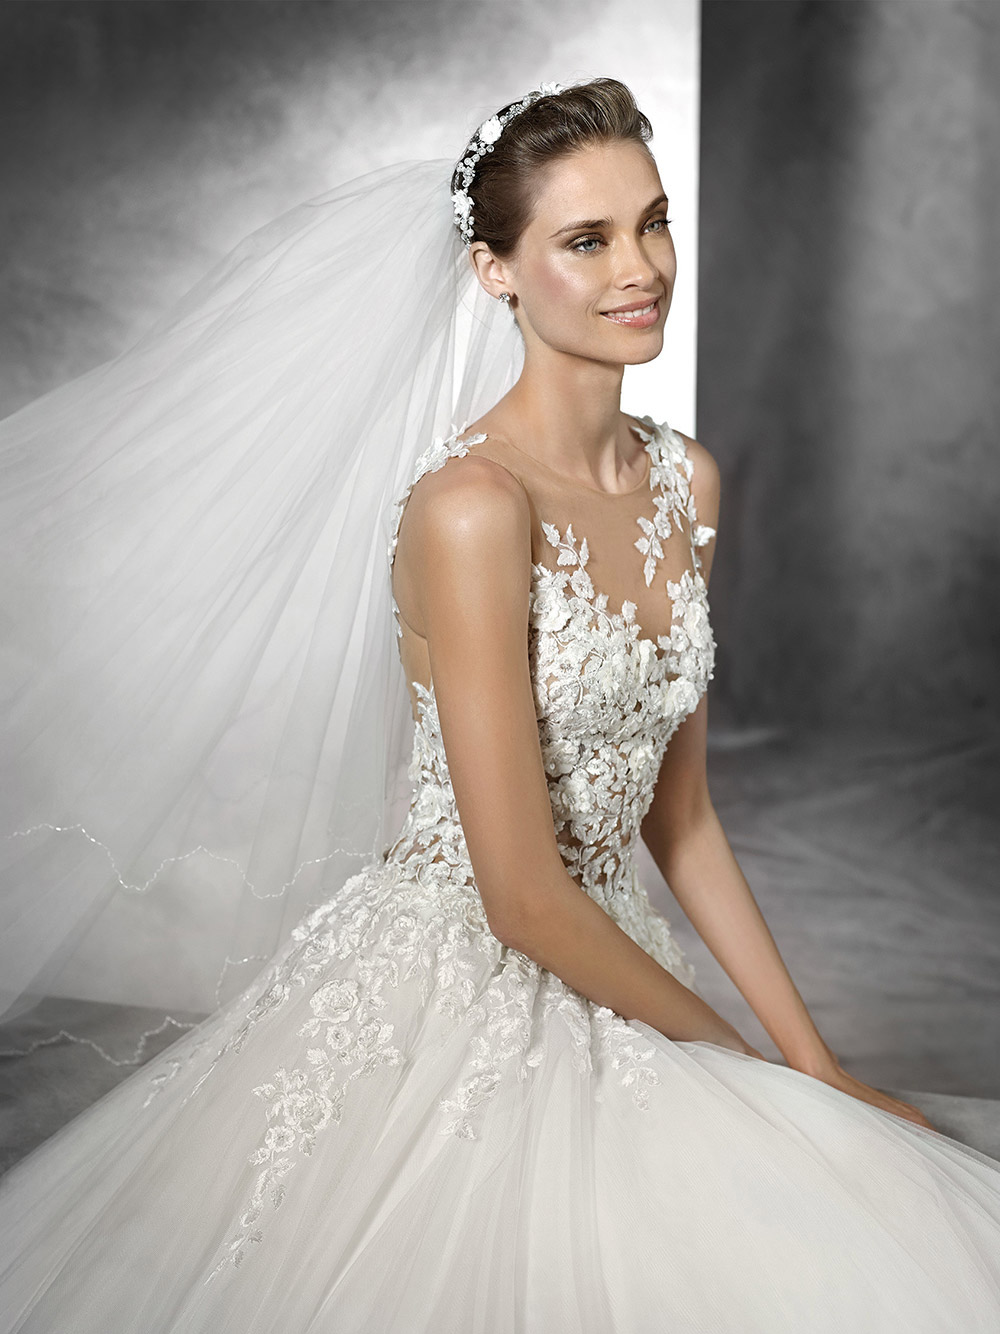 Taciana - Pronovias 2018 Bridal Collection. www.theweddingnotebook.com